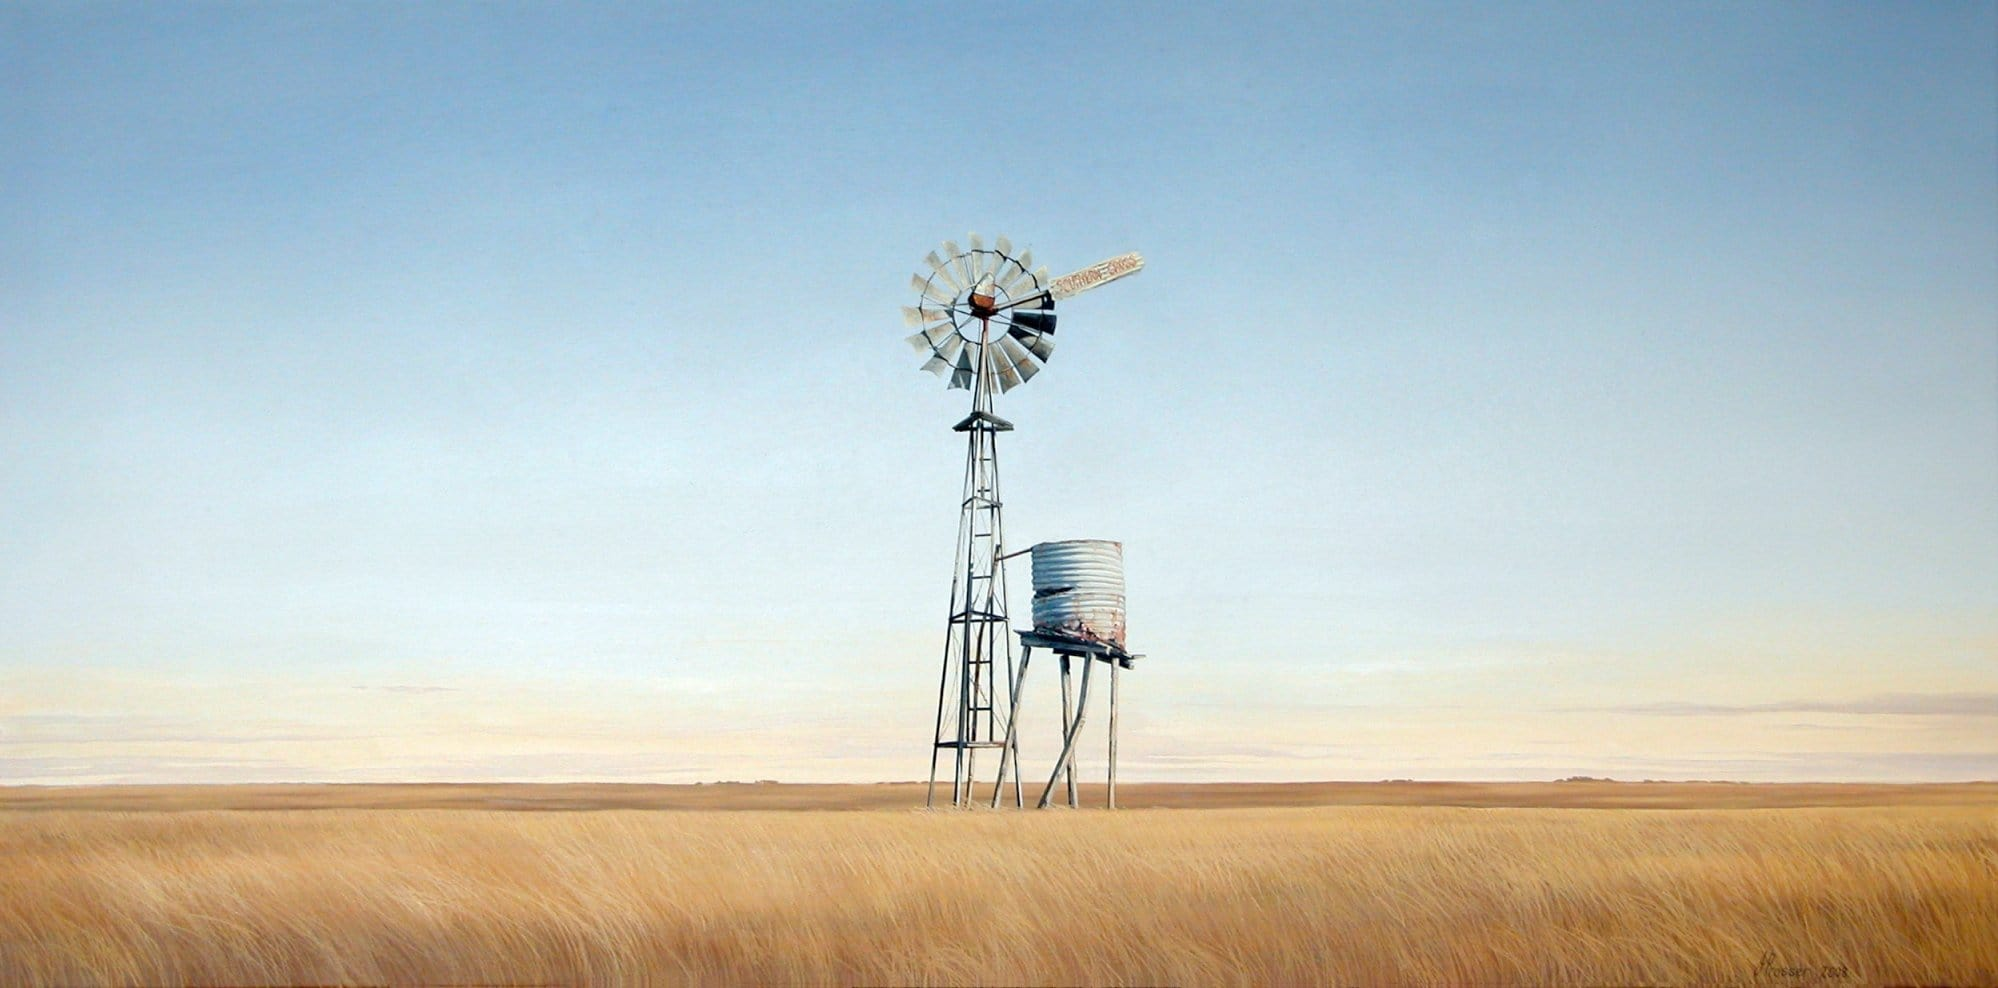 Landscape With Old Windmill Print - JAIME PROSSER ART